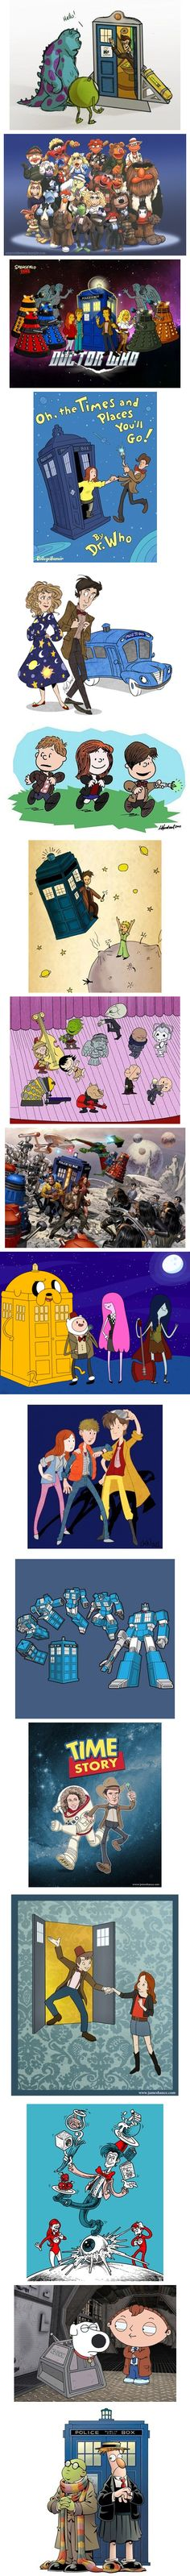 Doctor Who mash ups. Finally, all of them in one pin!